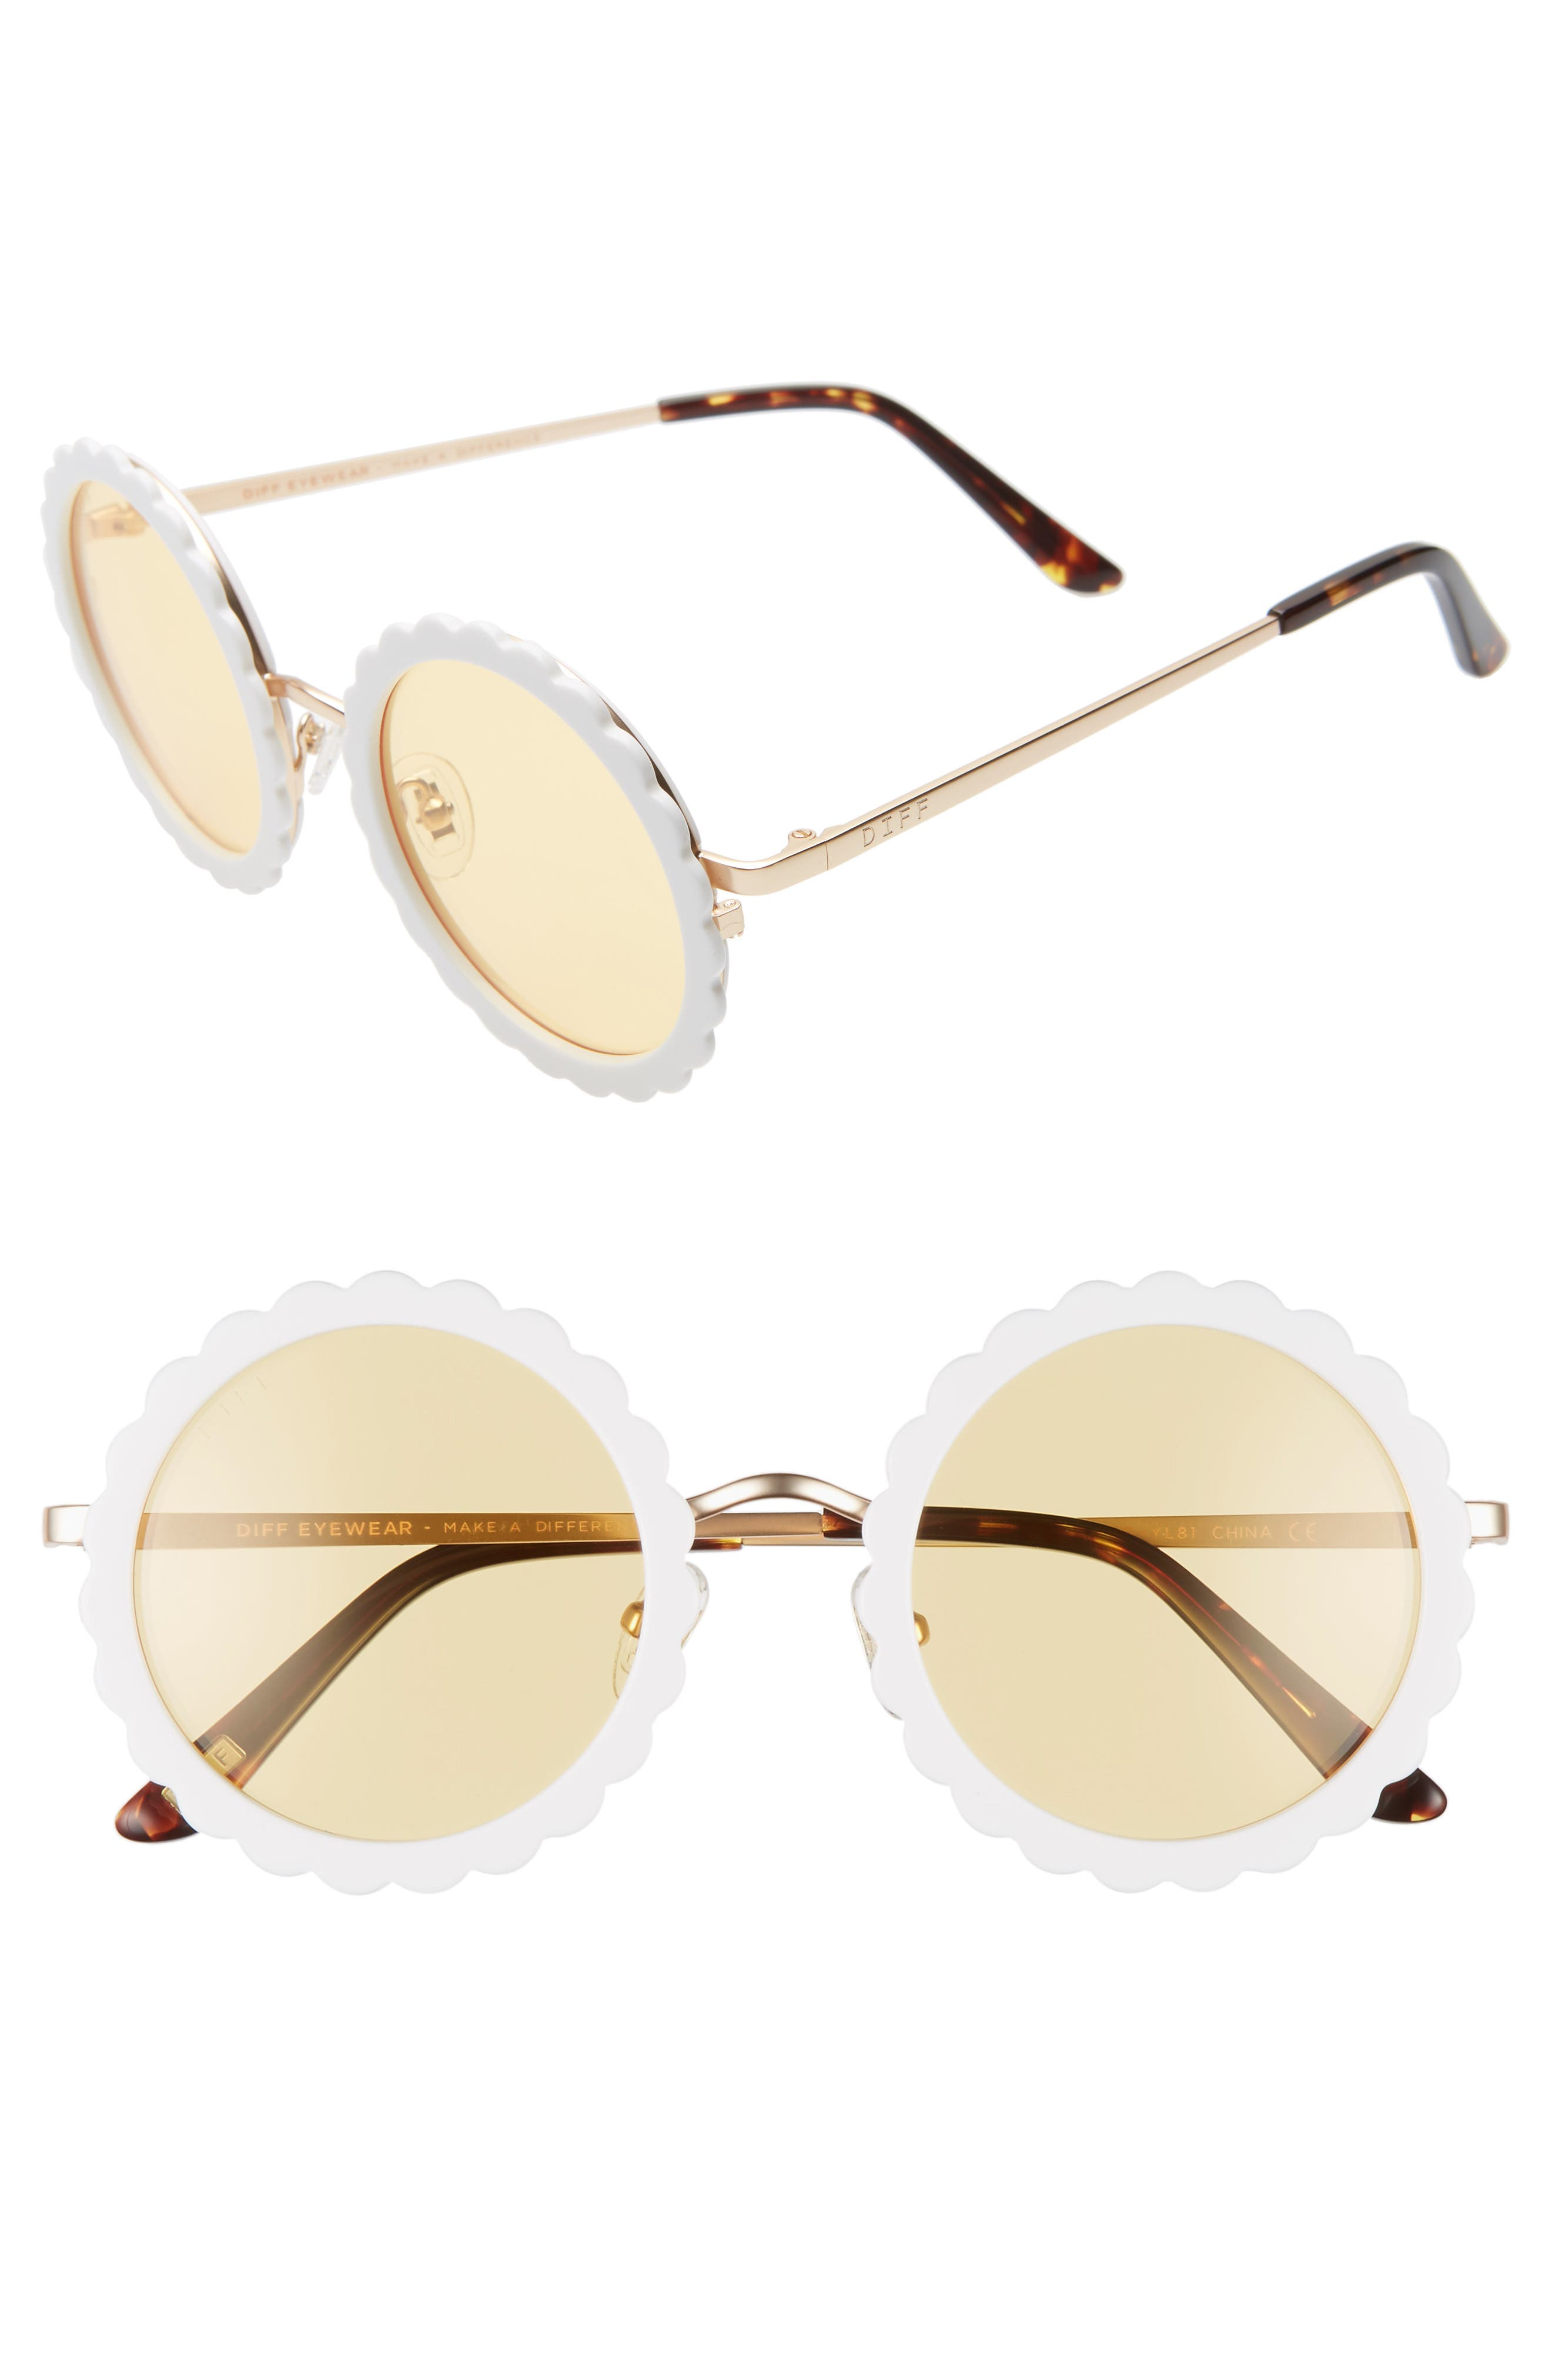 3cce32f9d5f4 1940s Sunglasses, Glasses & Eyeglasses History Womens Diff Dixie 47Mm Round  Sunglasses - White Gold